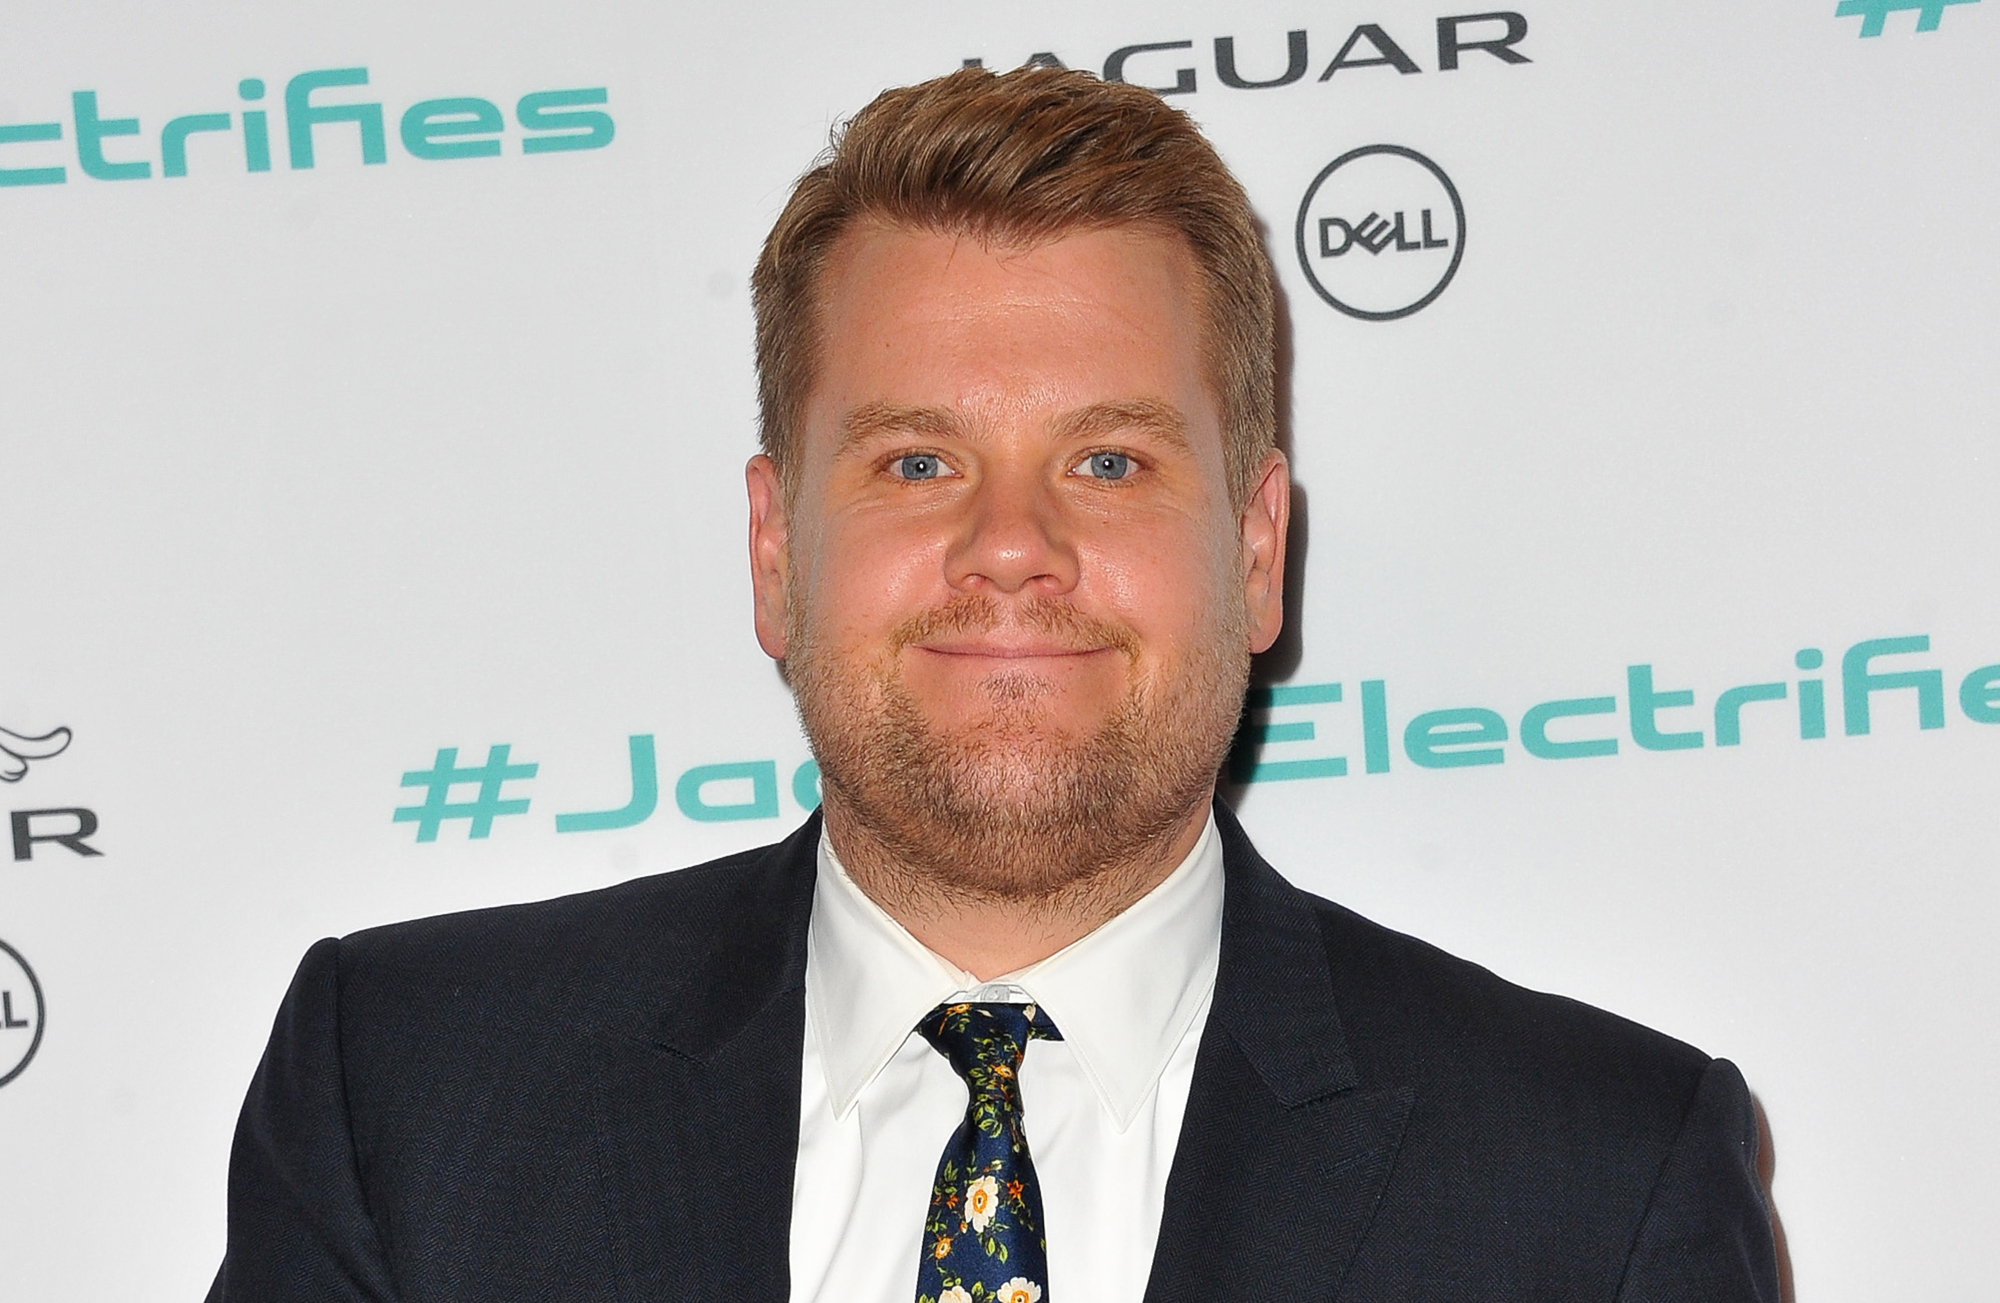 TV personality James Corden attends the Next Era Jaguar Vehicle Unveiling Event at Milk Studios on November 14, 2016 in Los Angeles, California.  (Photo by Allen Berezovsky/WireImage)